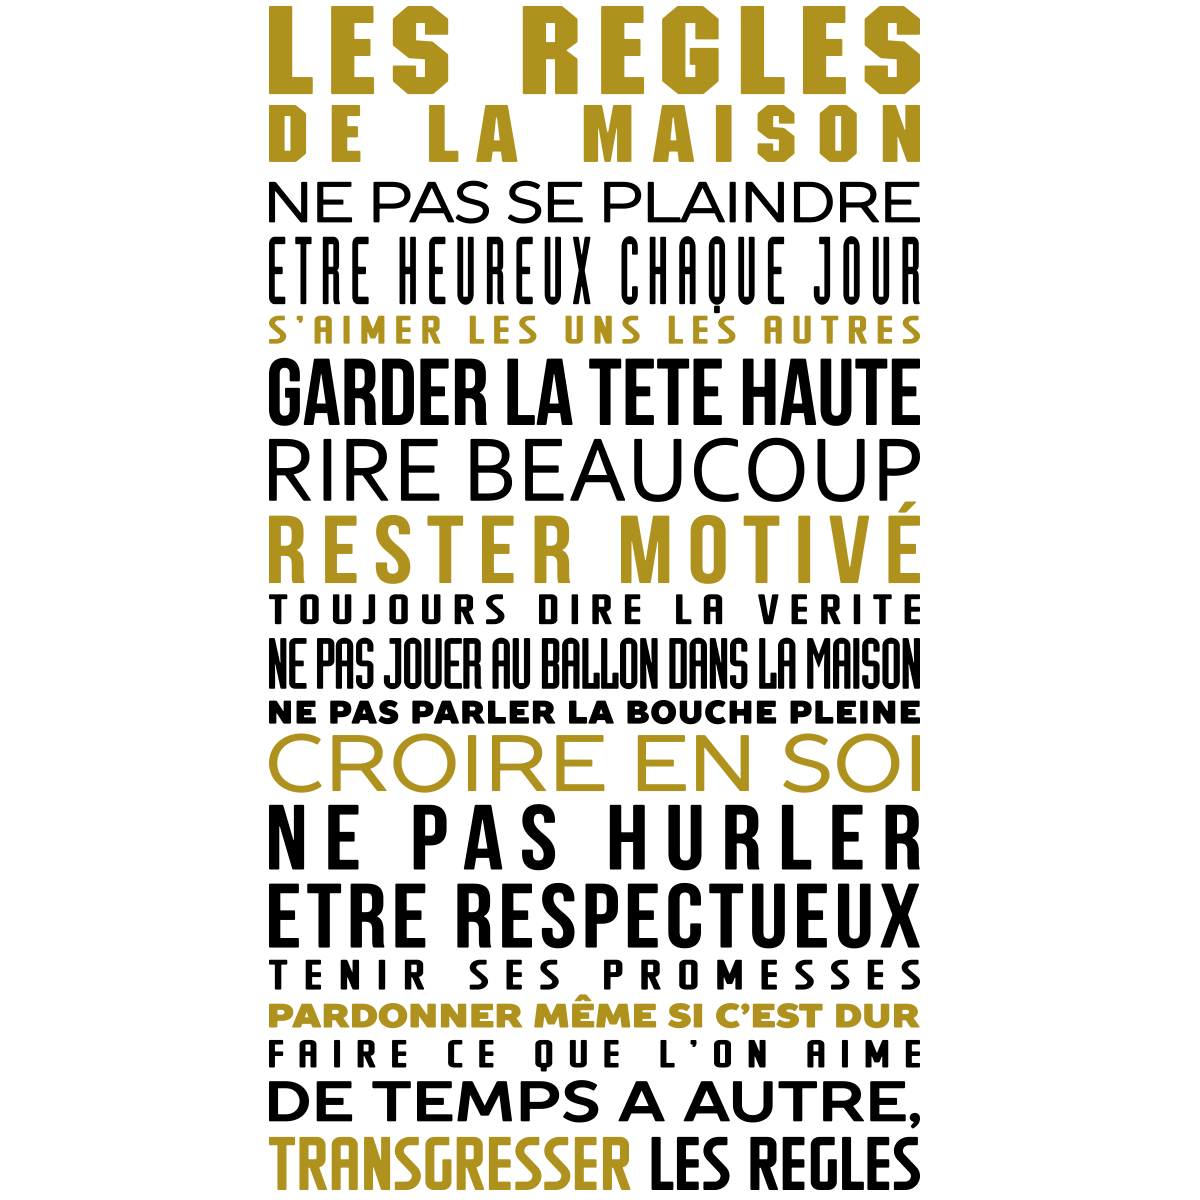 Stickers citation les r gles de la maison en couleur stickers citations fran ais ambiance - Poster les regles de la maison ...